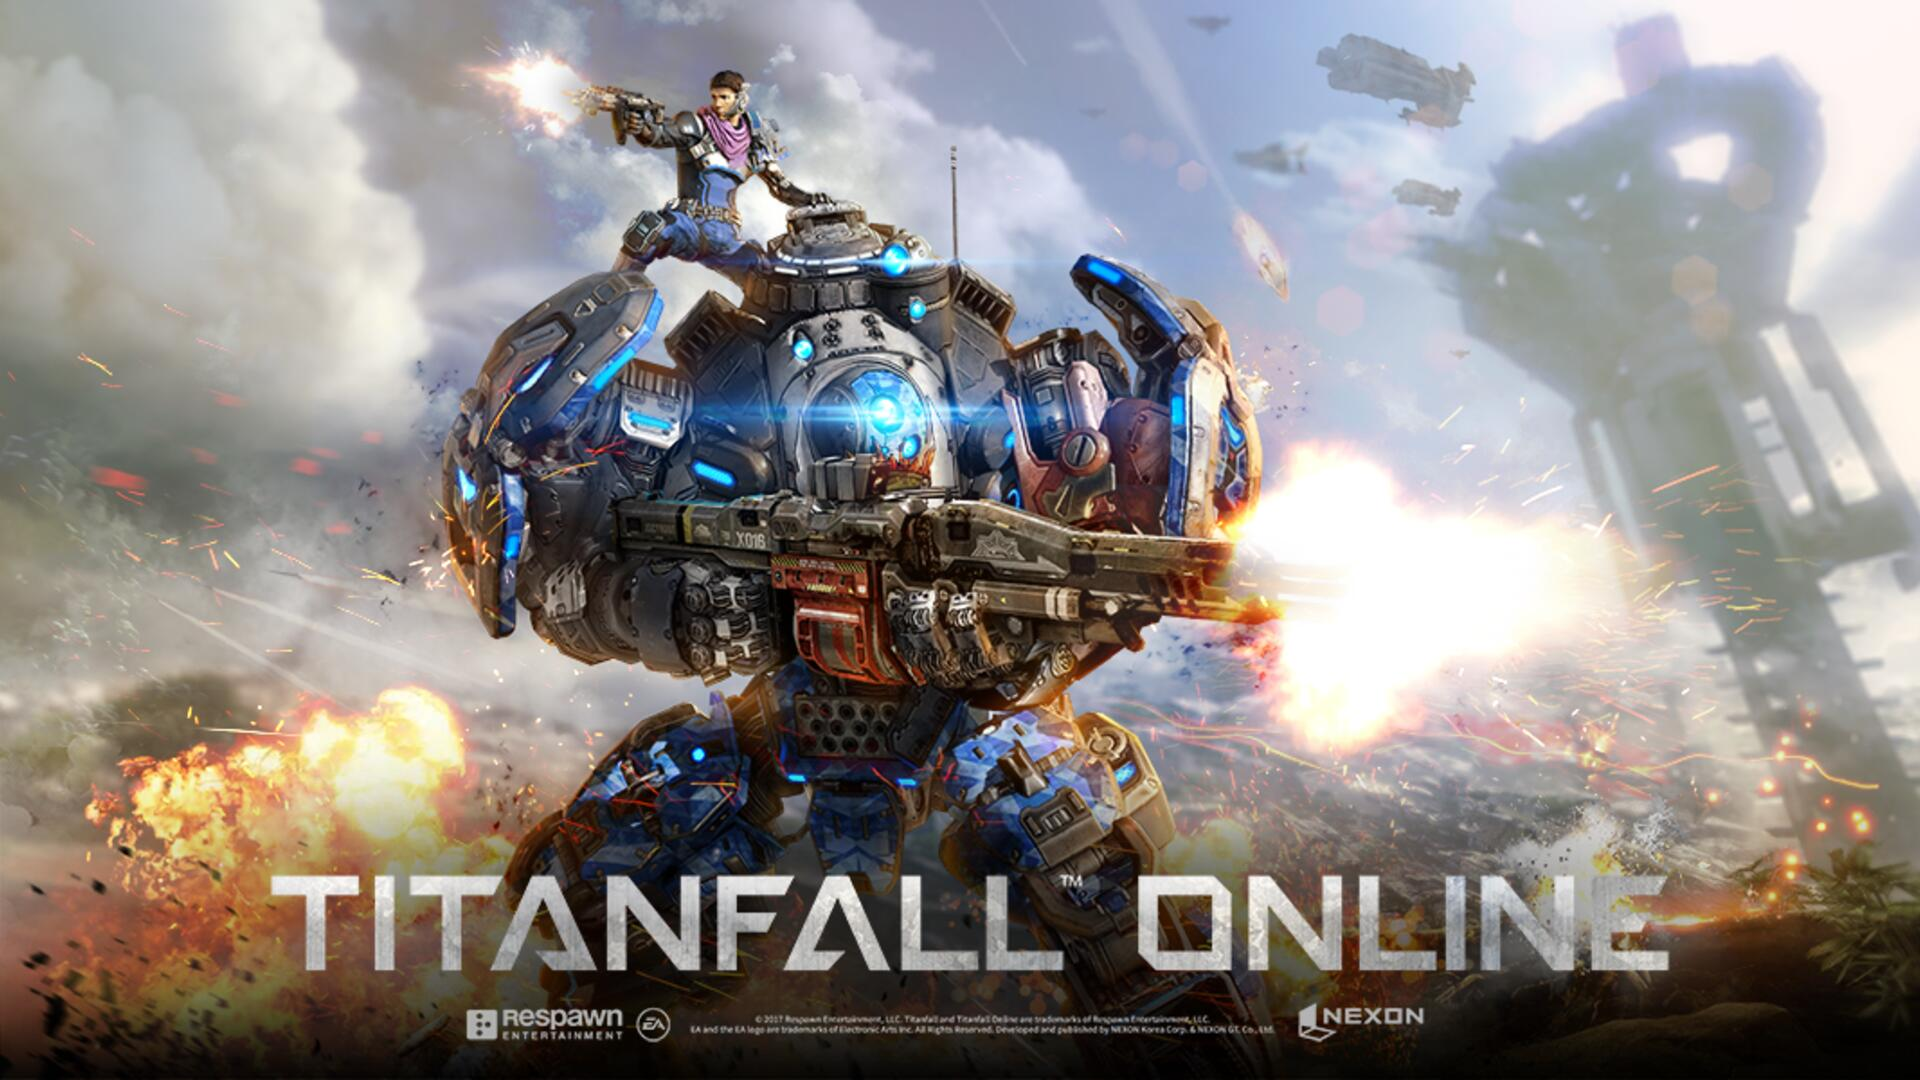 Nexon-Helmed Project Titanfall Online Has Been Cancelled